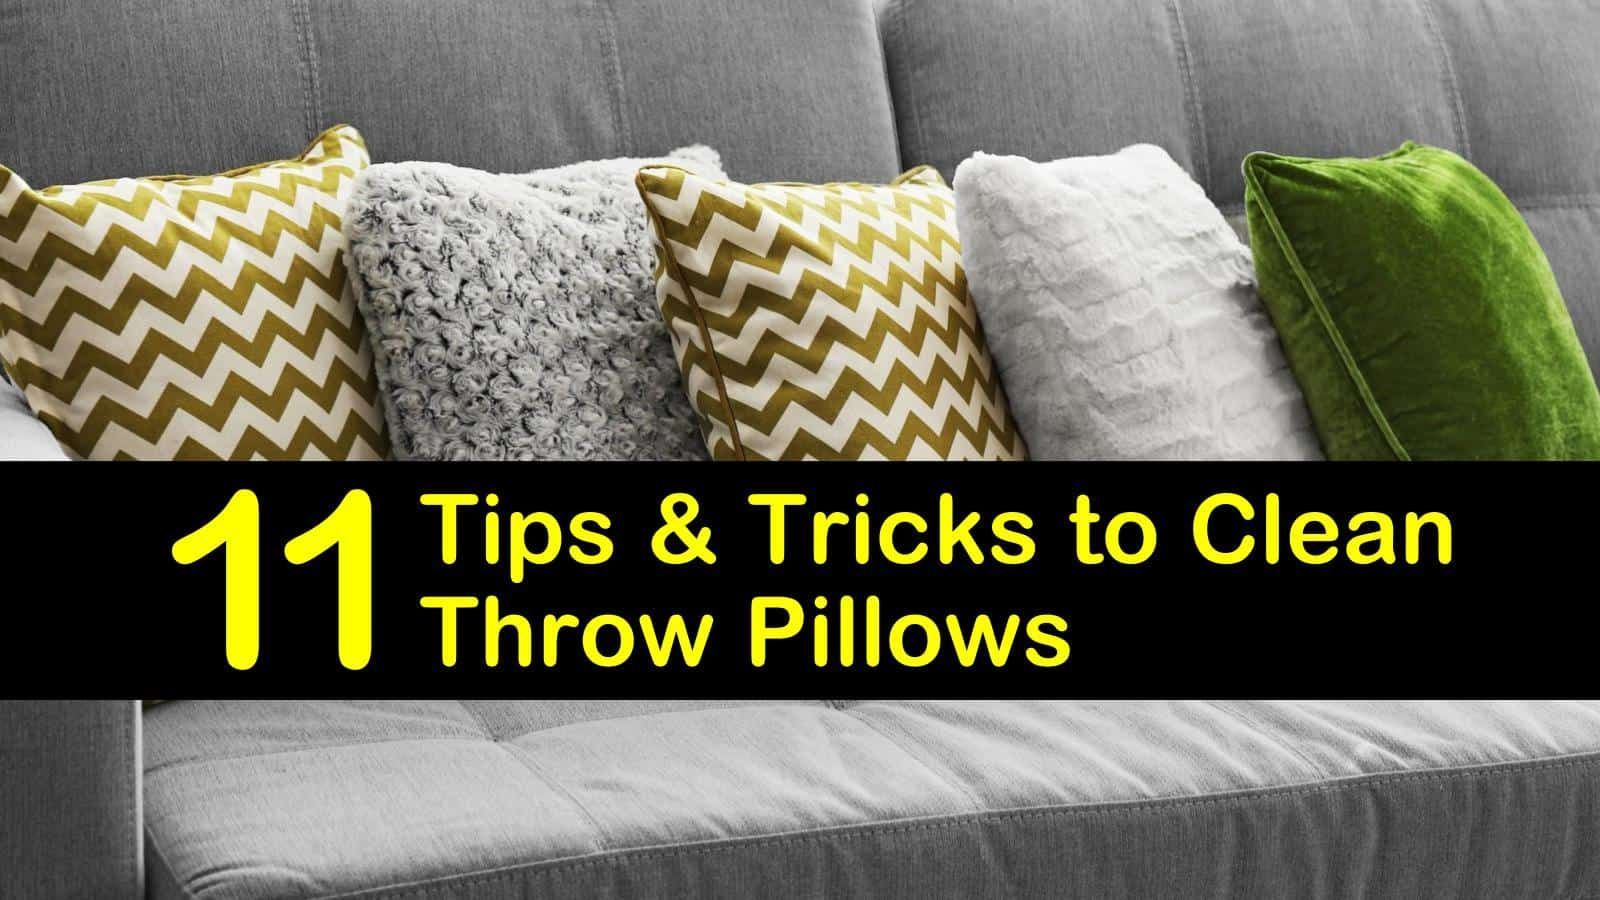 How To Wash Polyester Throw Pillows Without Removable Cover Selimiyemosque Bestpillow How To Wash Throw Pillows Throw Pillows Suede Throw Pillows How to clean throw pillows